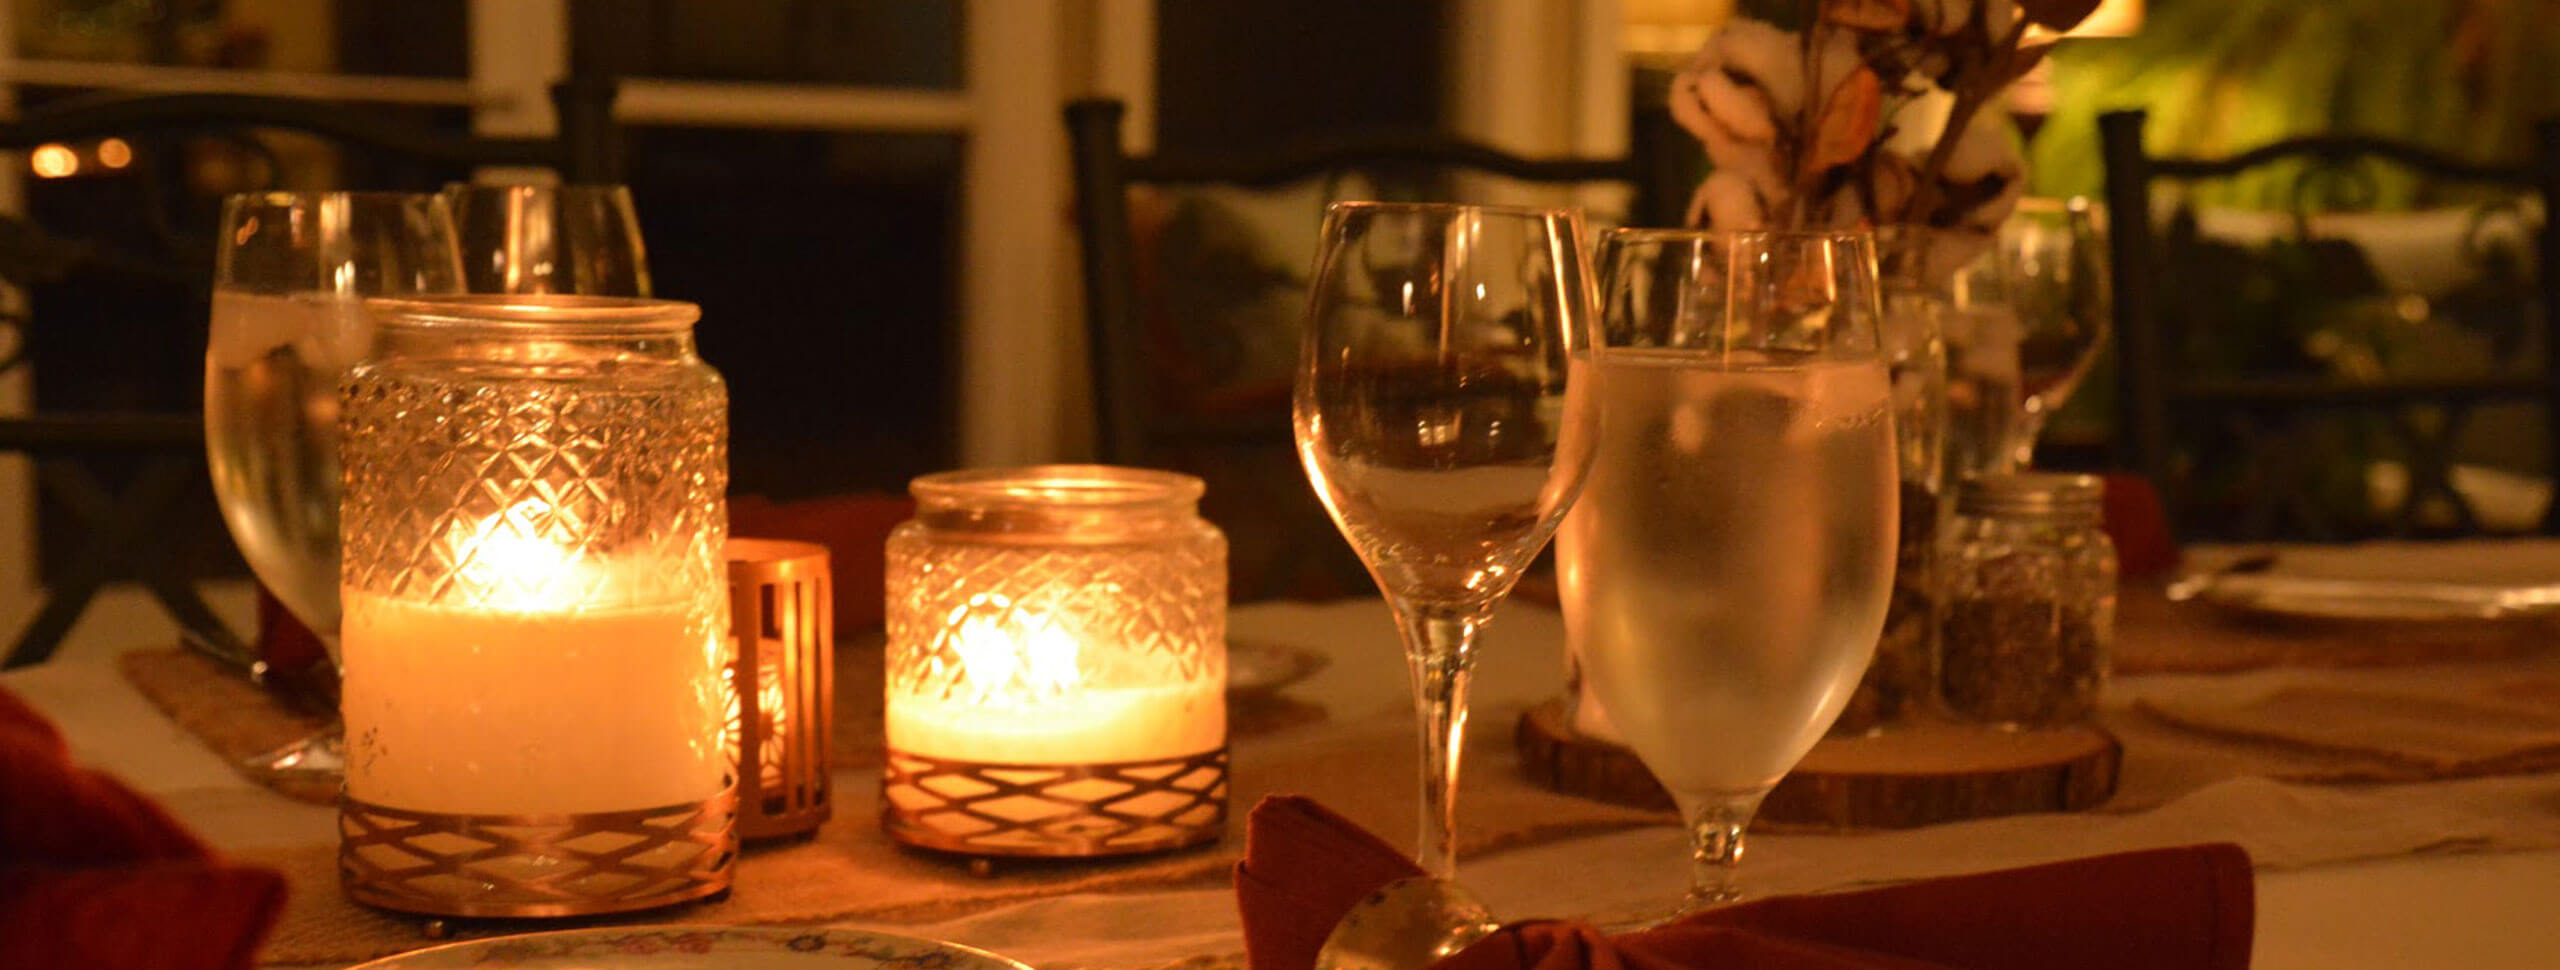 Celebrate Special Occasions on Seneca Lake, Magnolia Place Bed & Breakfast, Finger Lakes, NY